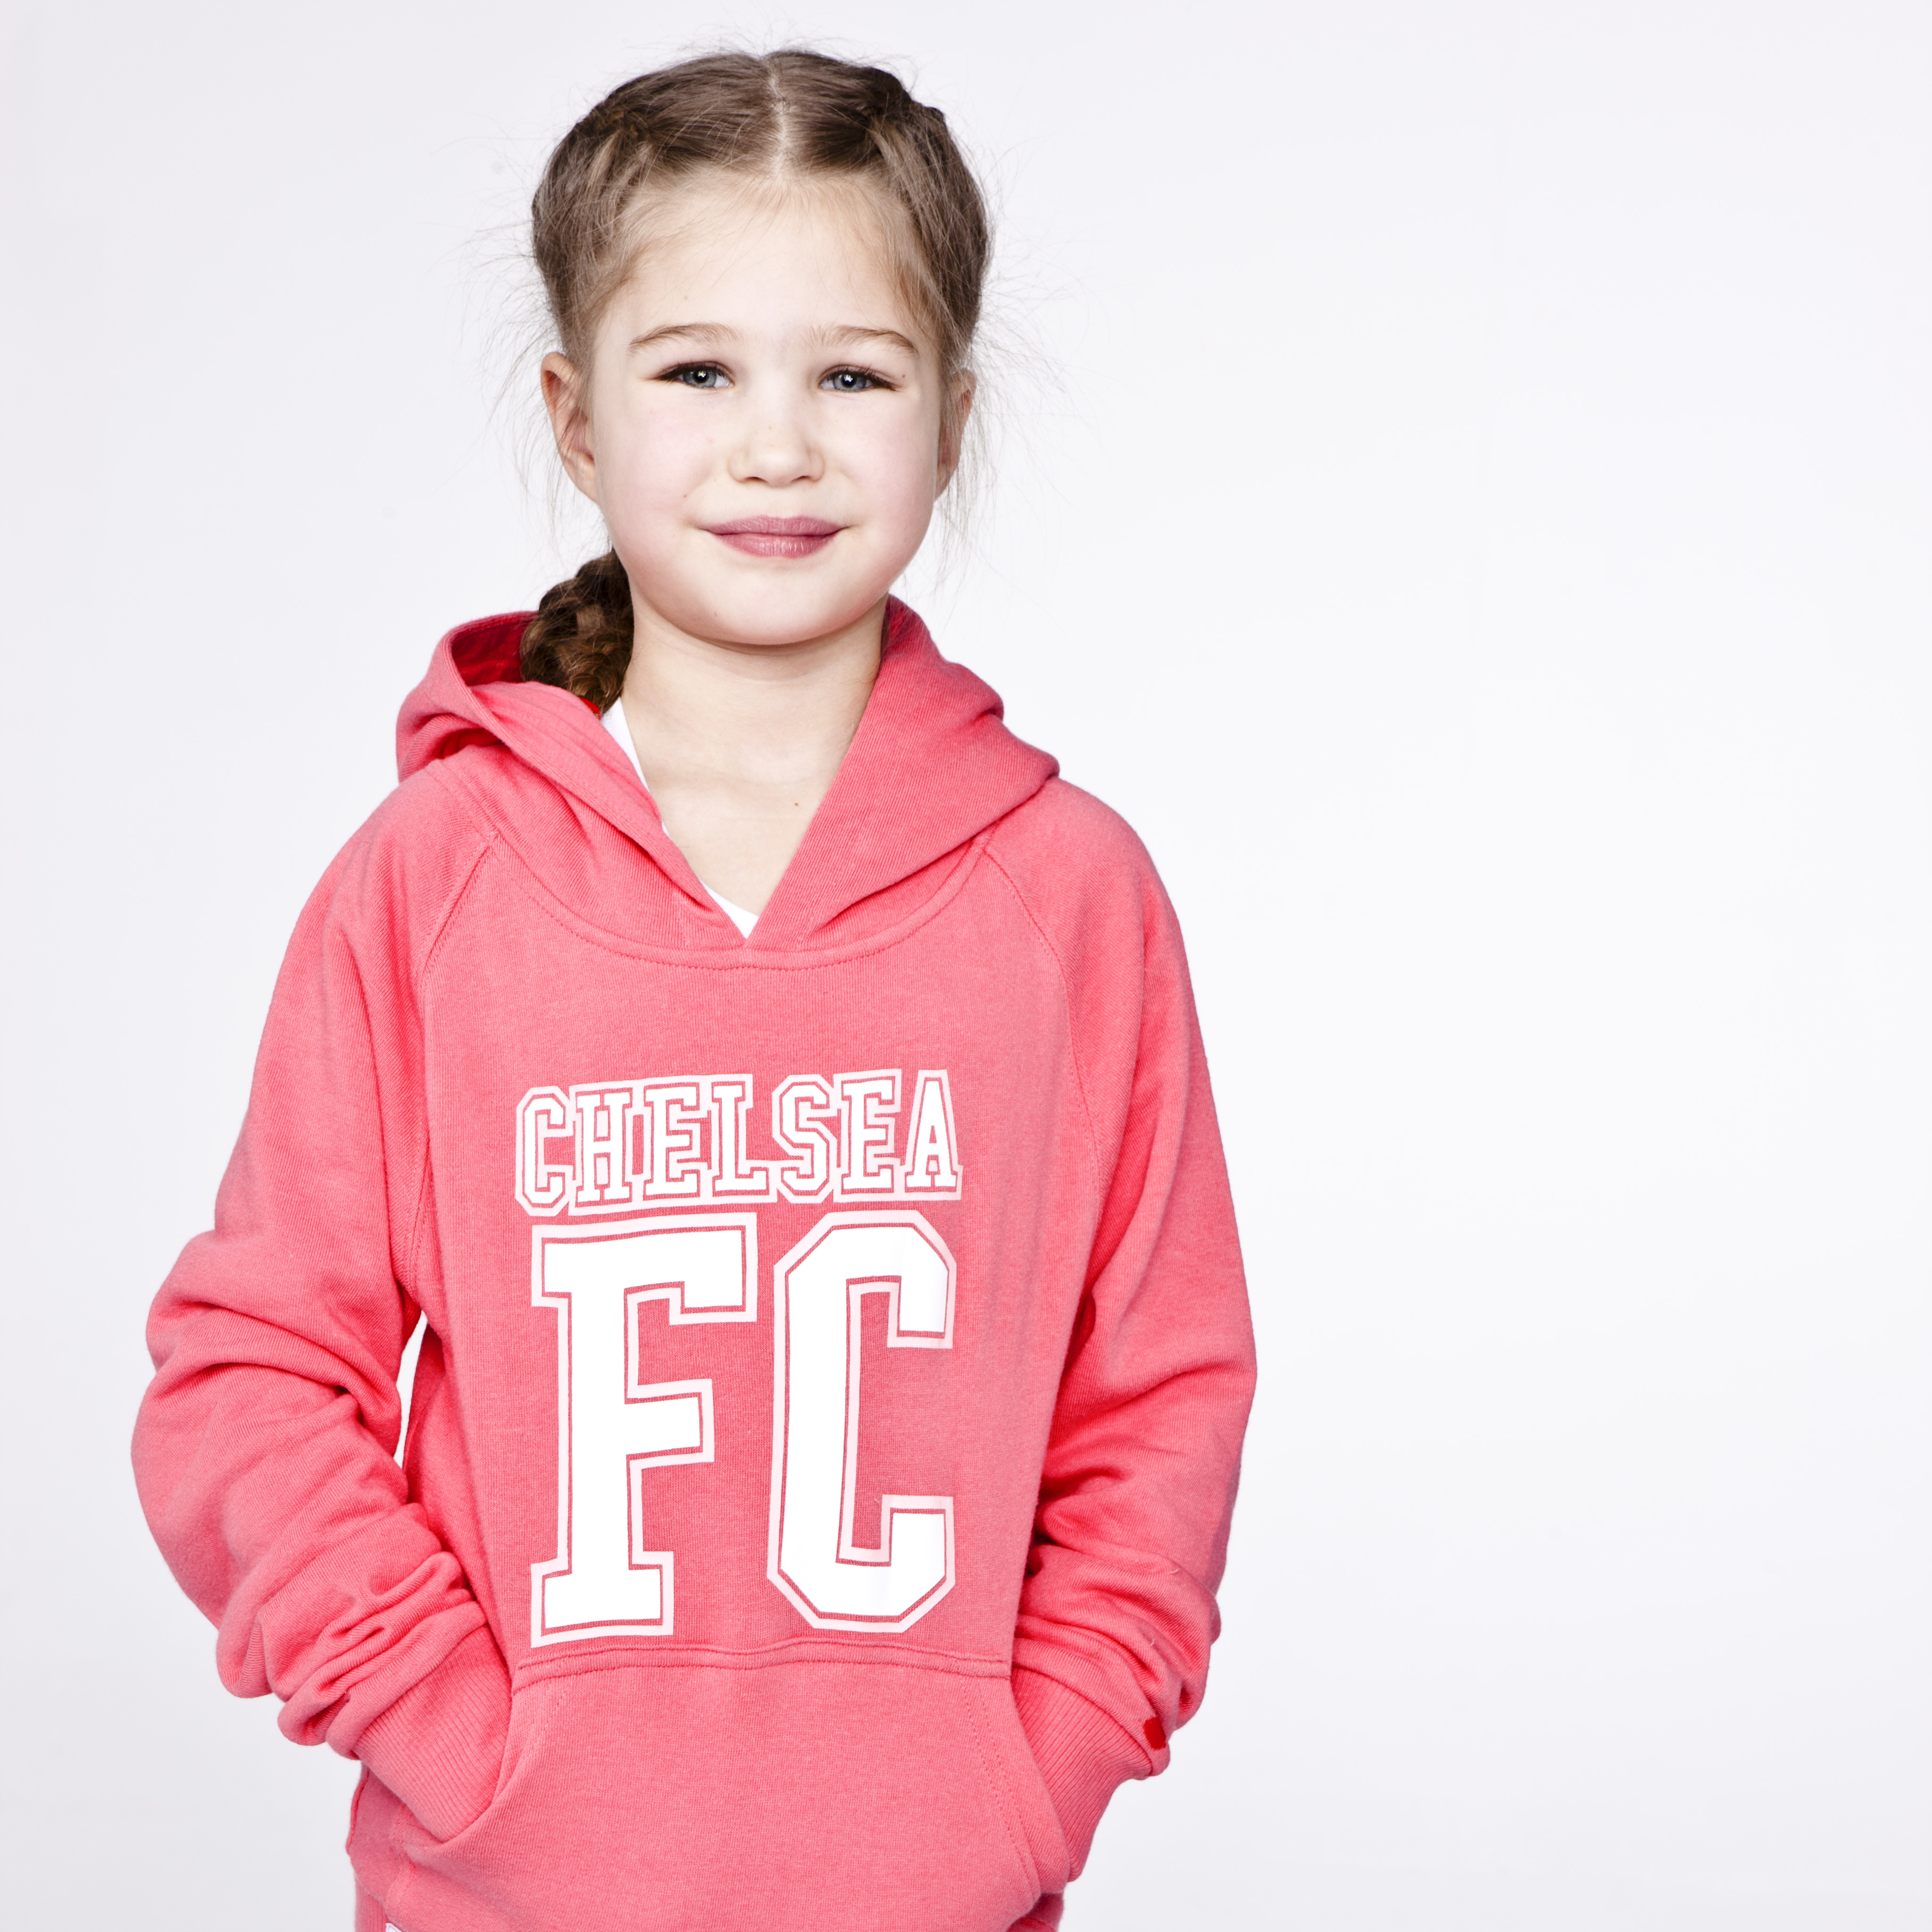 Chelsea FC Fleece Hoody - Blush Pink - Girls